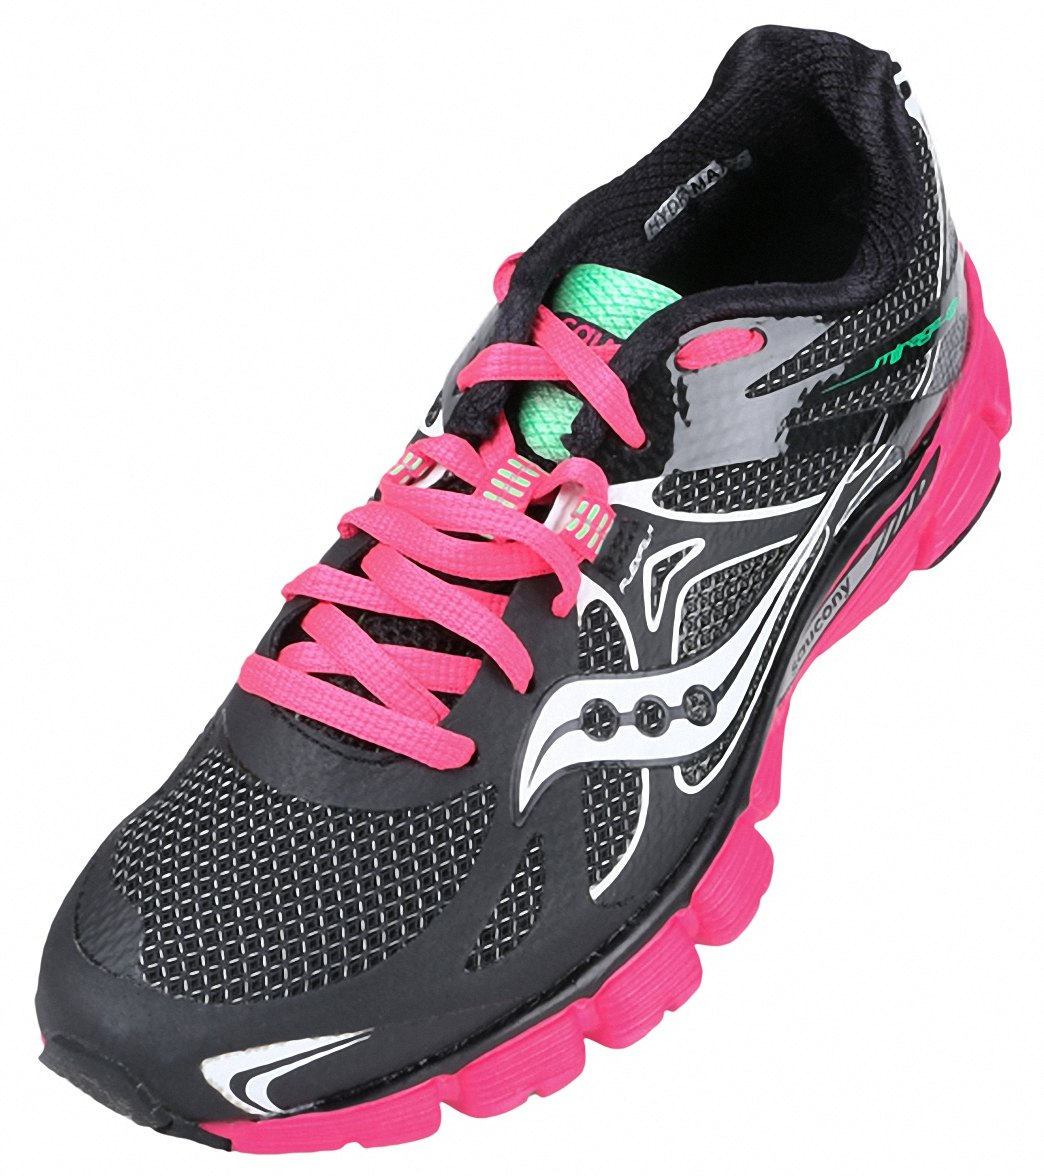 Find Discontinued Running Shoes